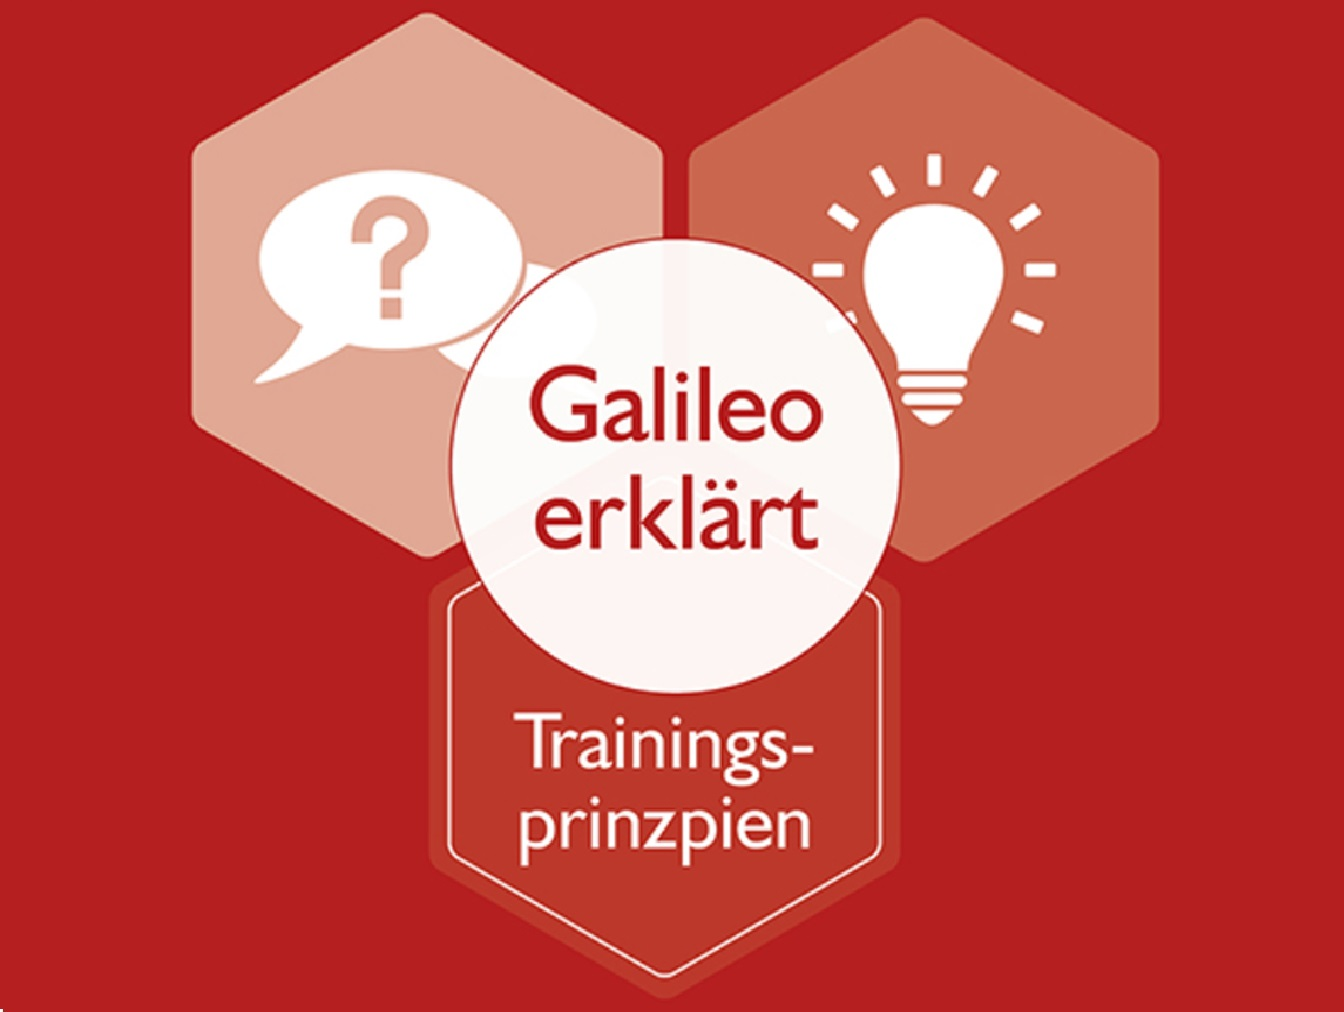 Galileo erklärt - Trainingsprinzipien